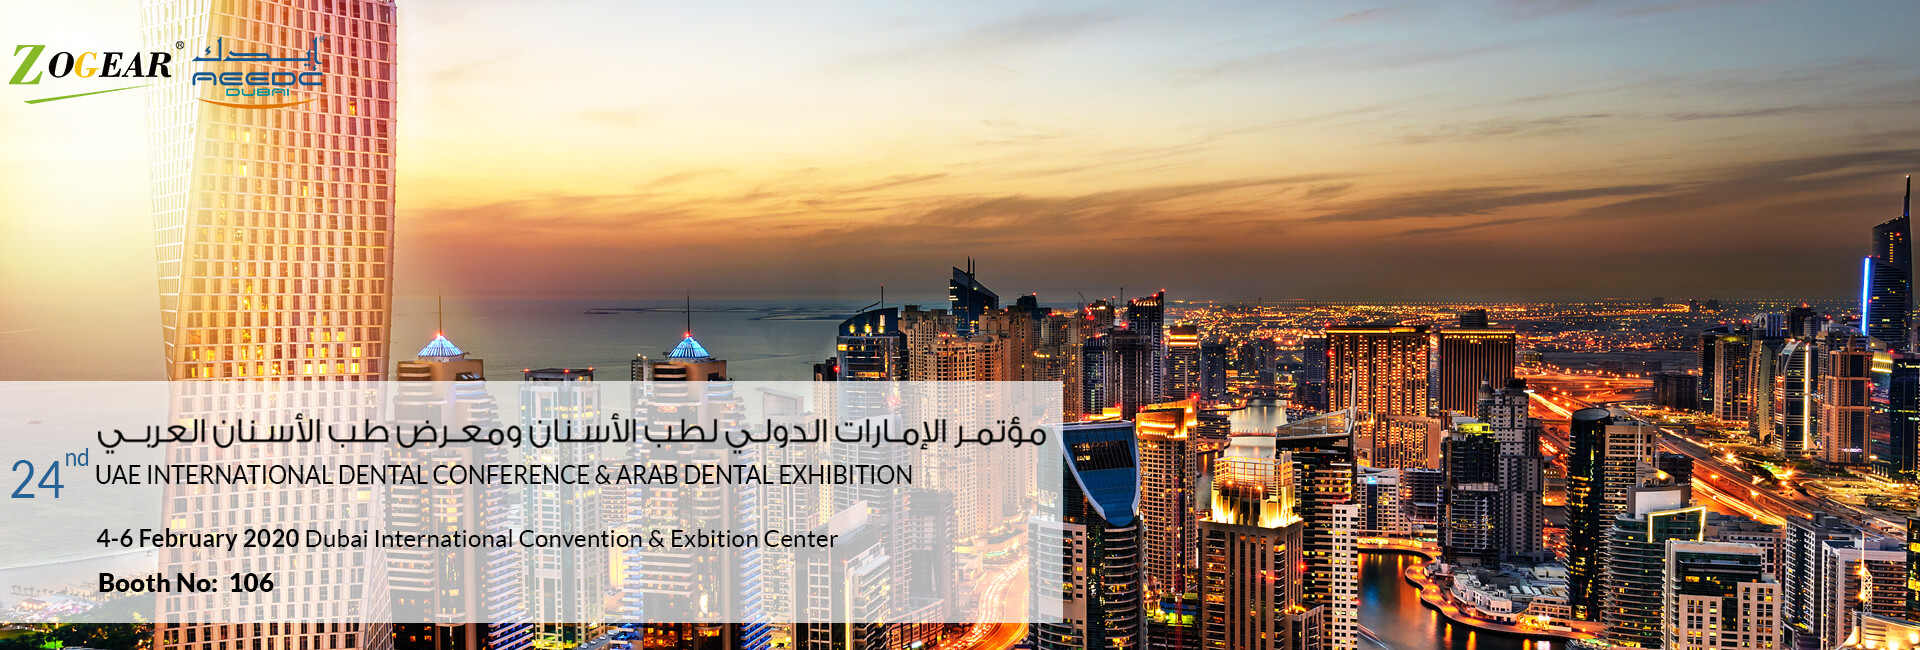 Uae International Dental Conferencr &Arab Dental Exhibition